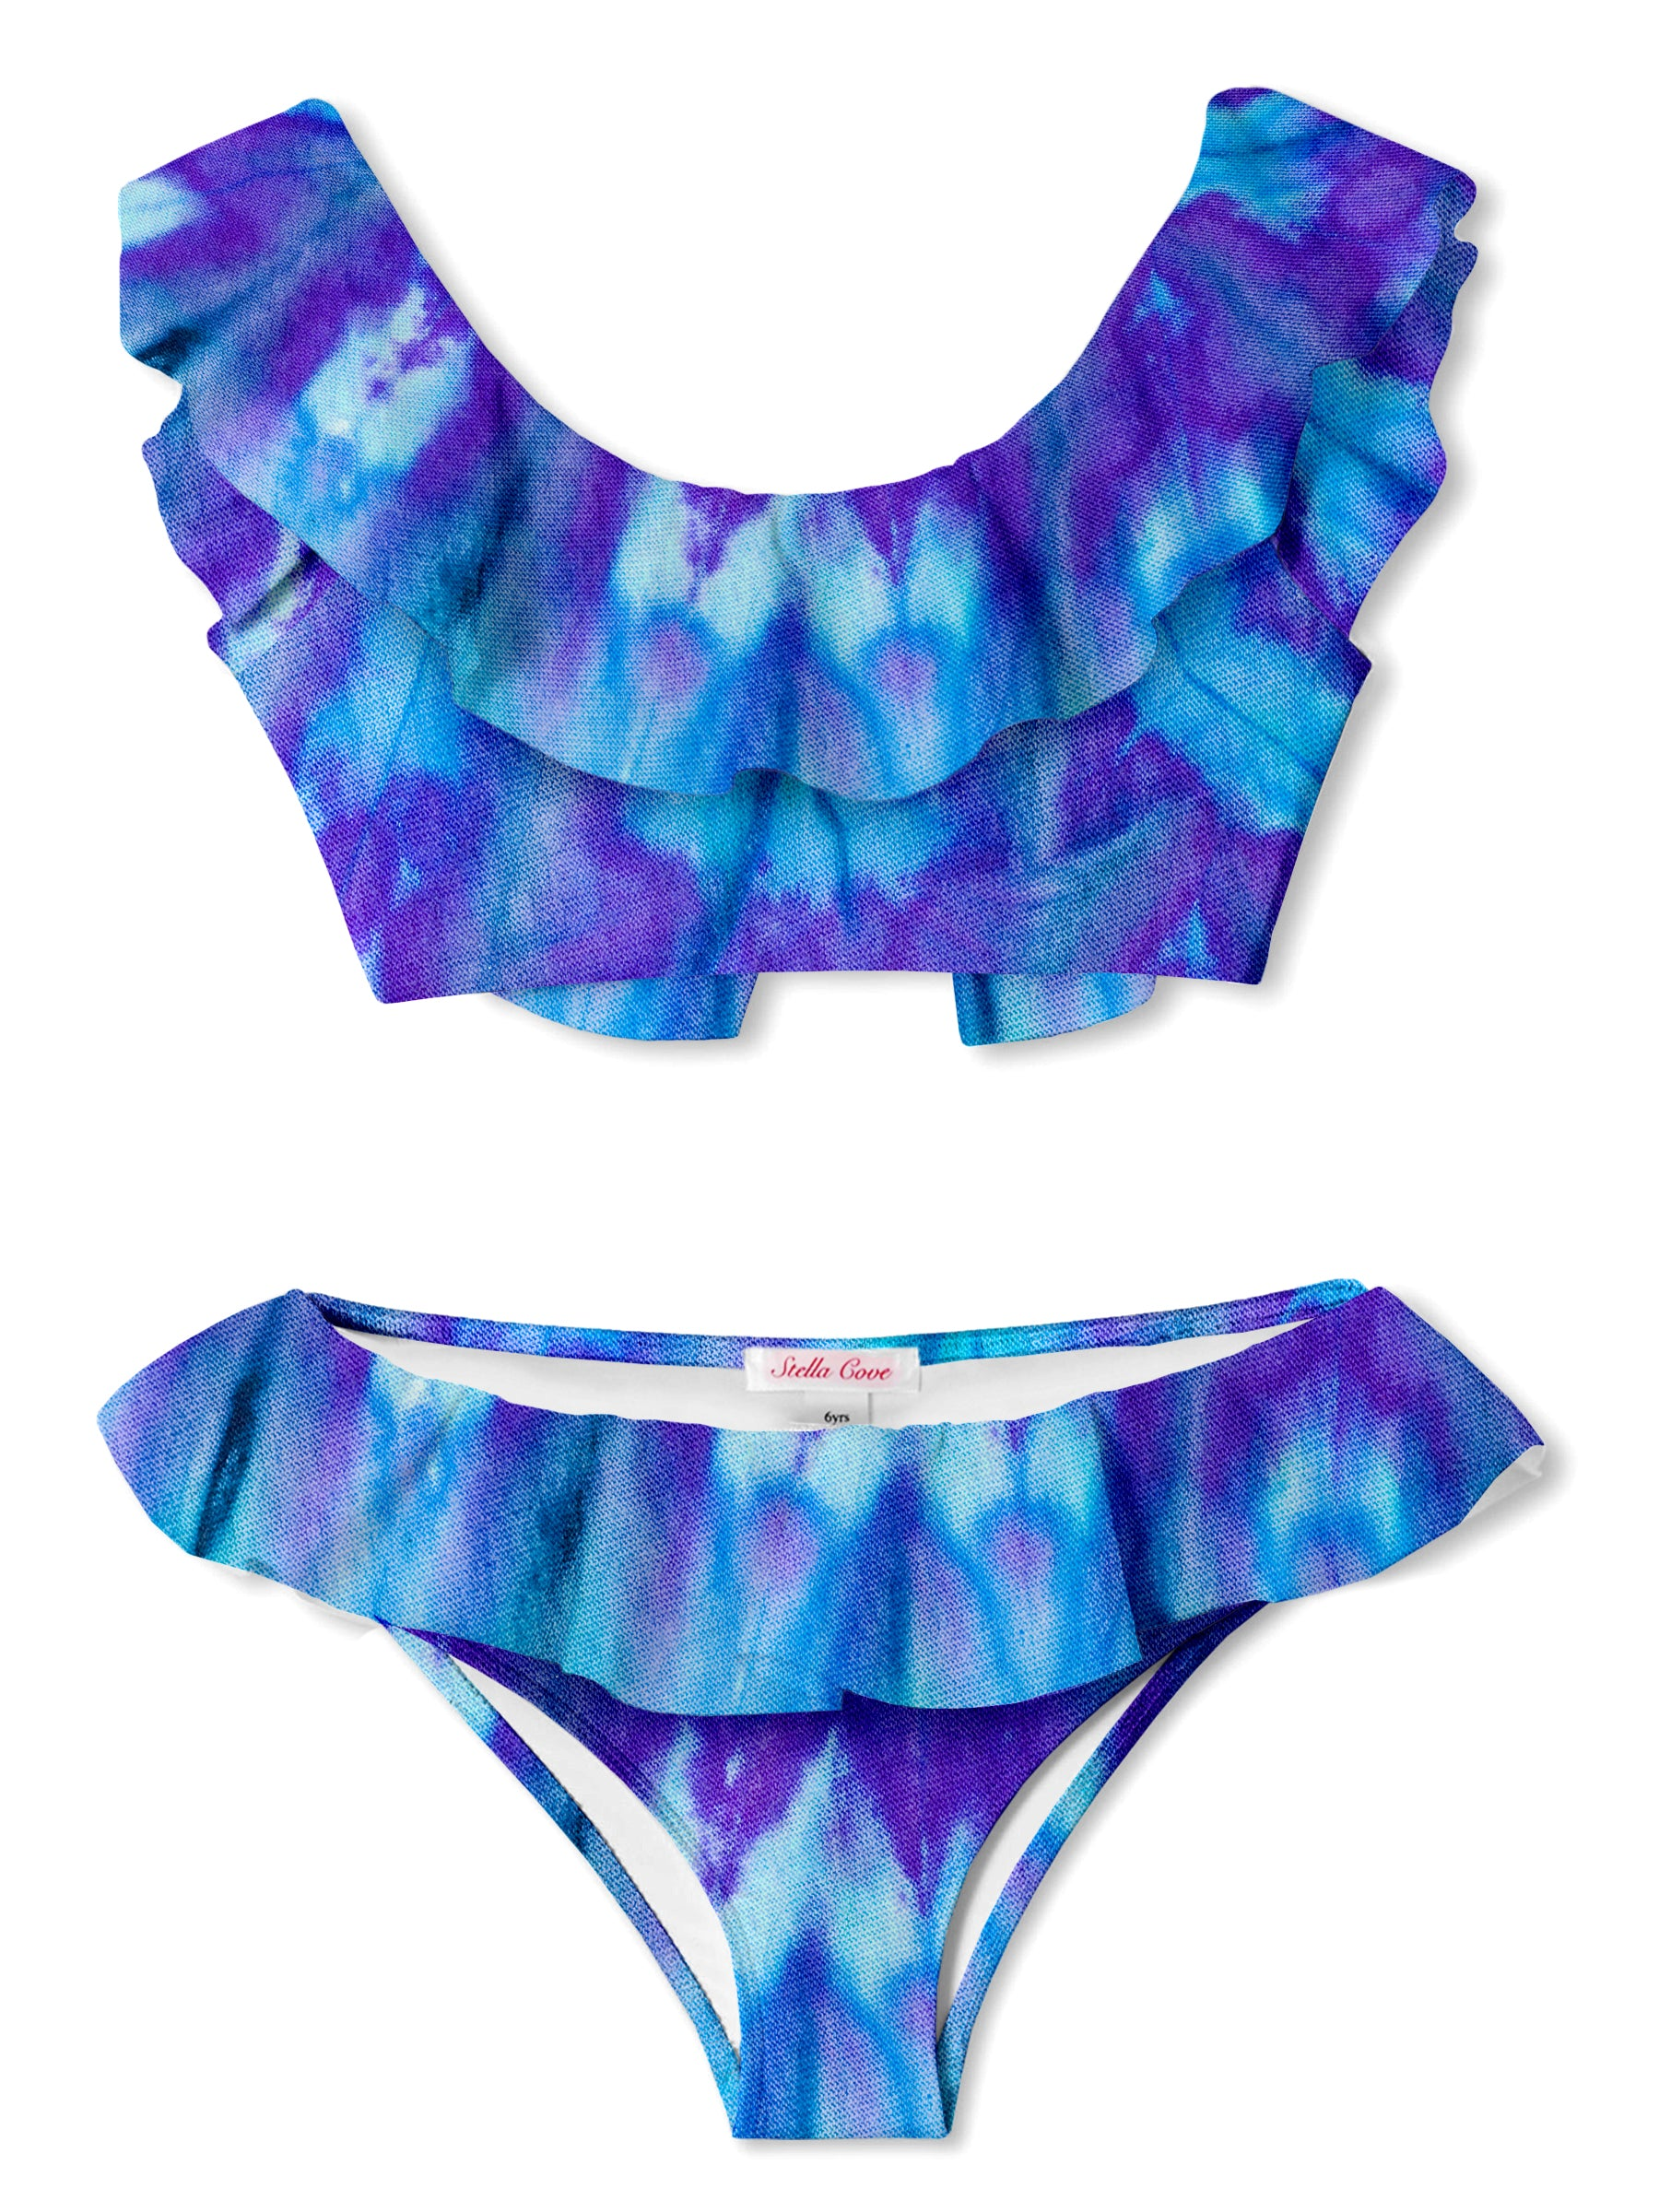 Indigo Tie Dye Bikini for Girls